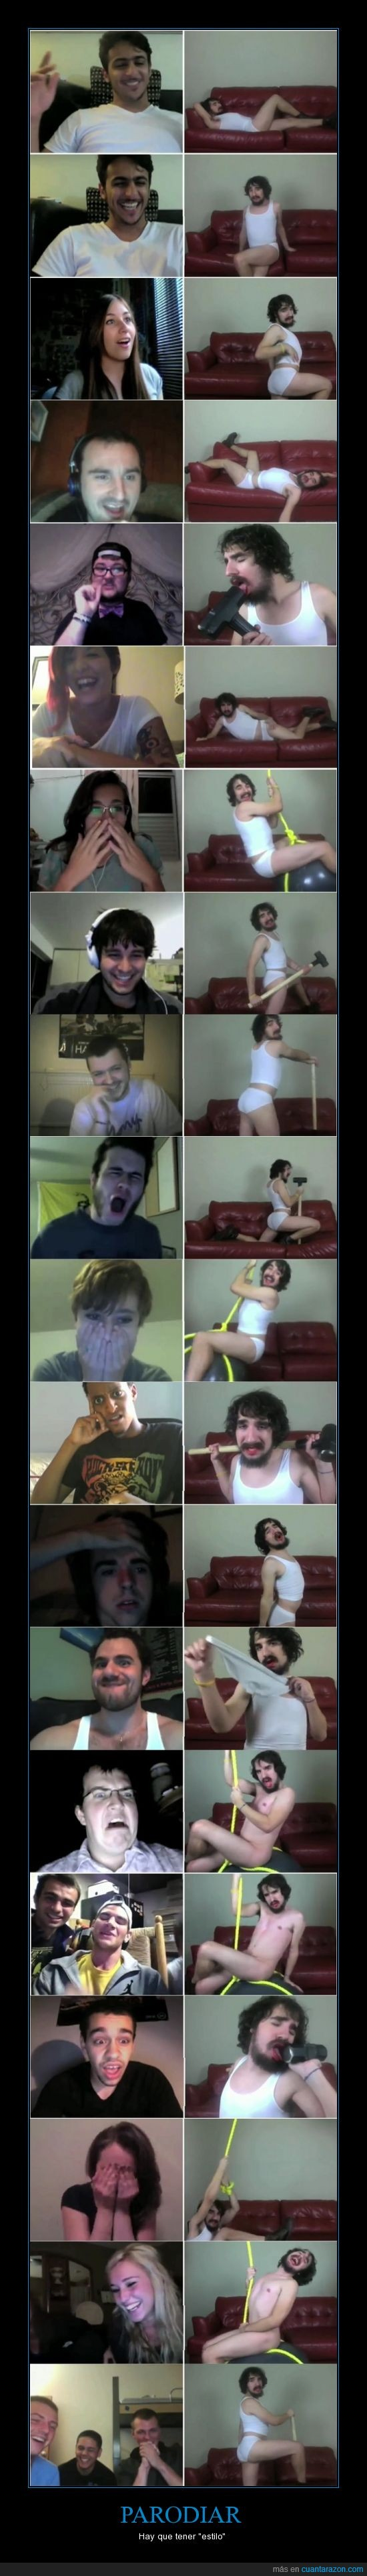 Chatroulette,Miley Cyrus,Parodia,Wrecking ball